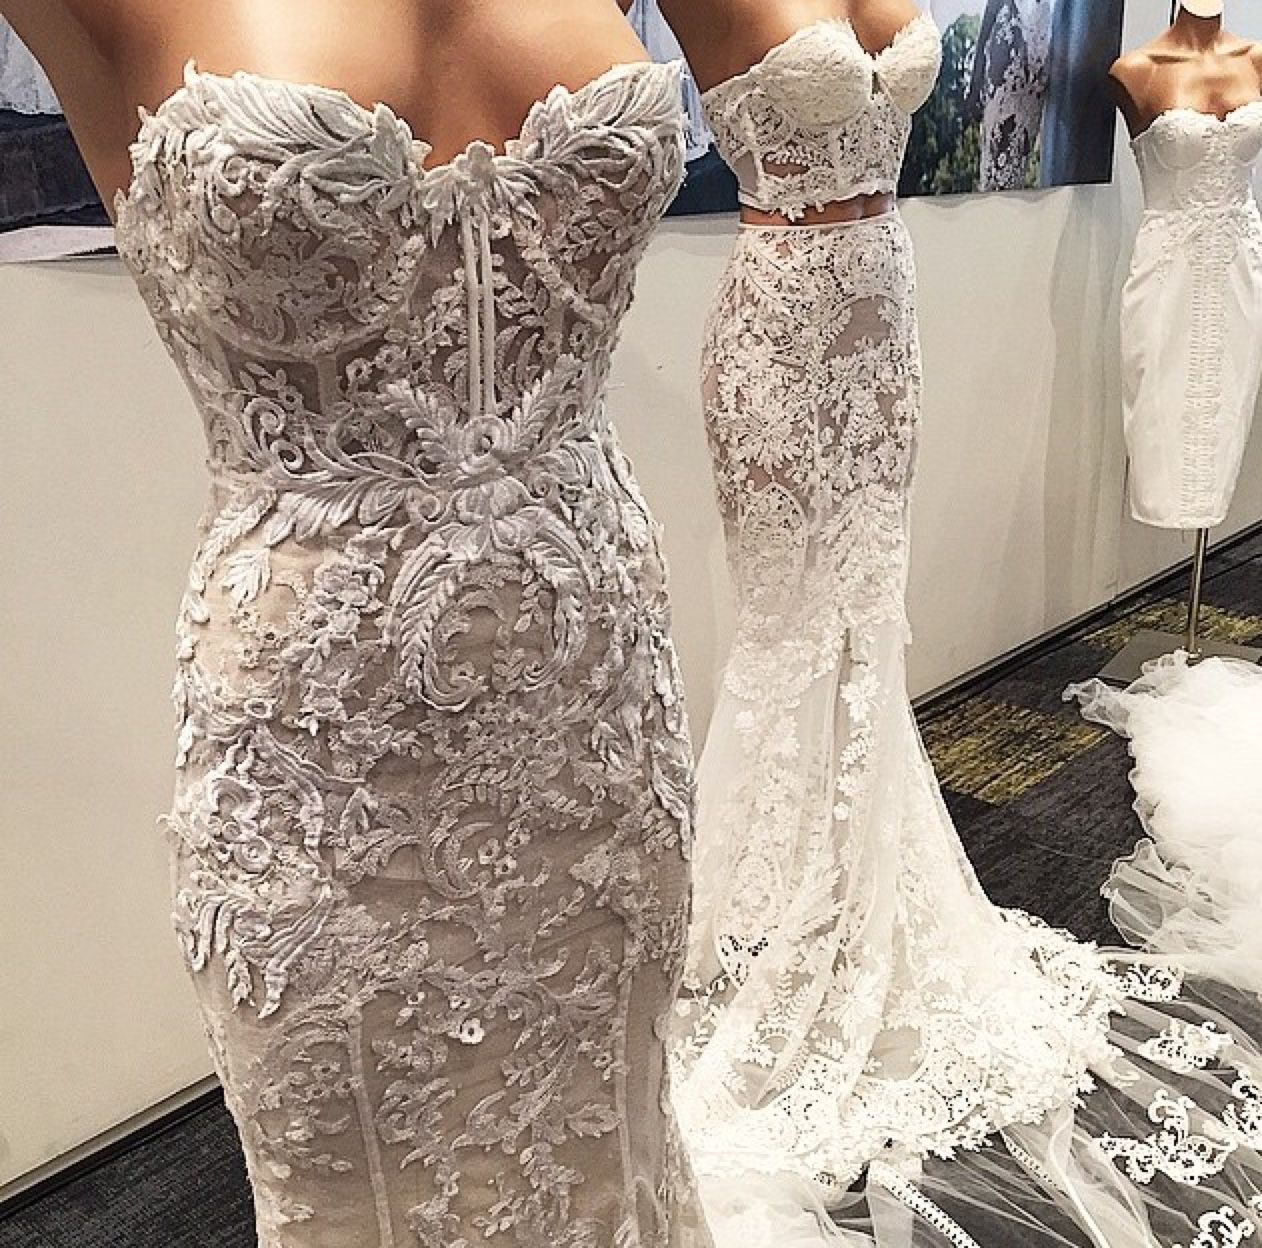 Outlet stores lace dream bodycon dress los angeles